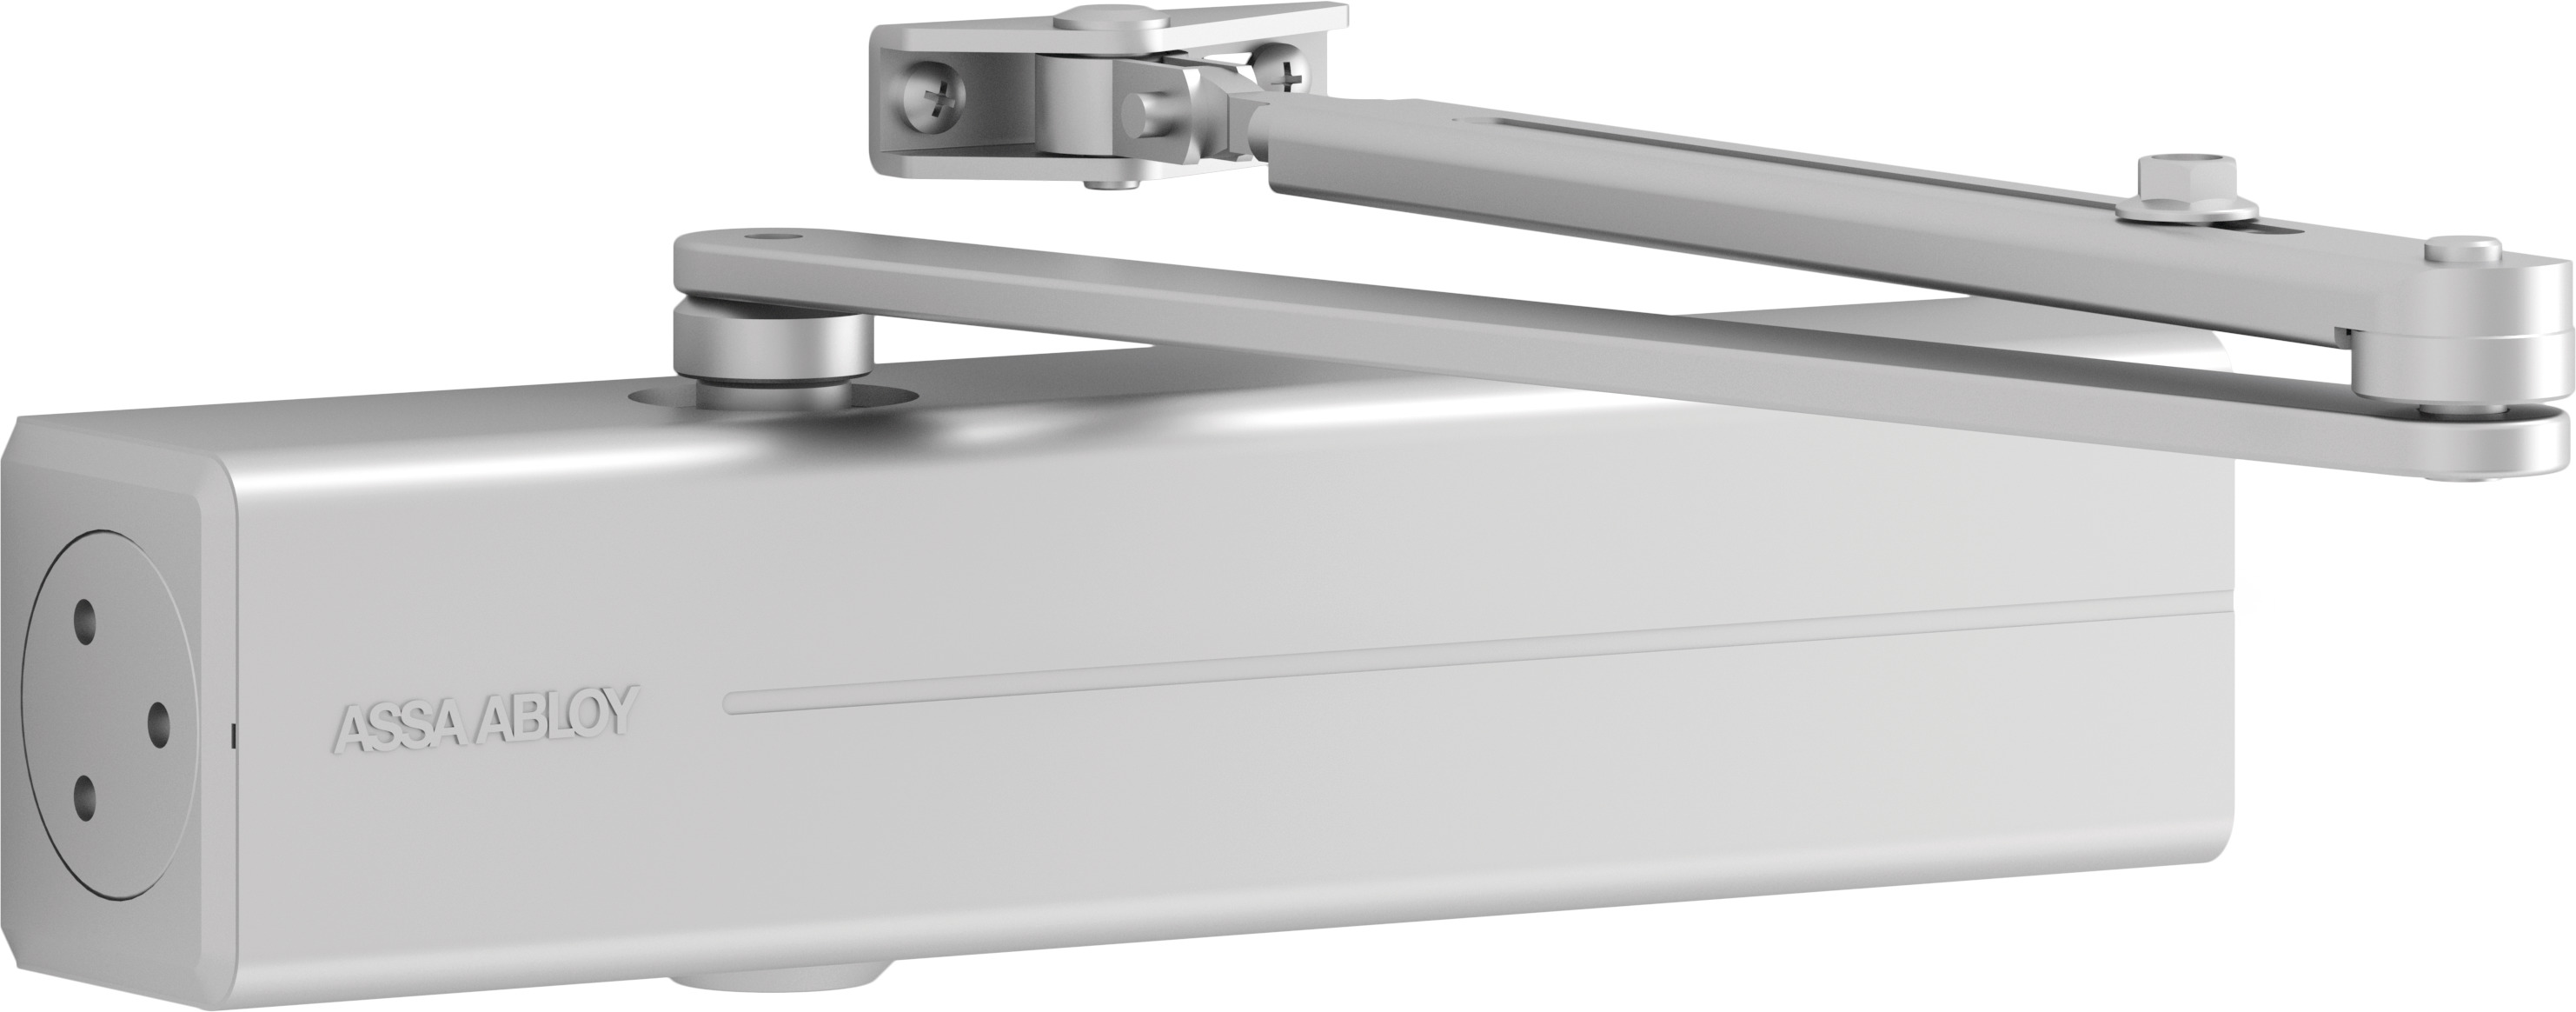 Dc300 Door Closer